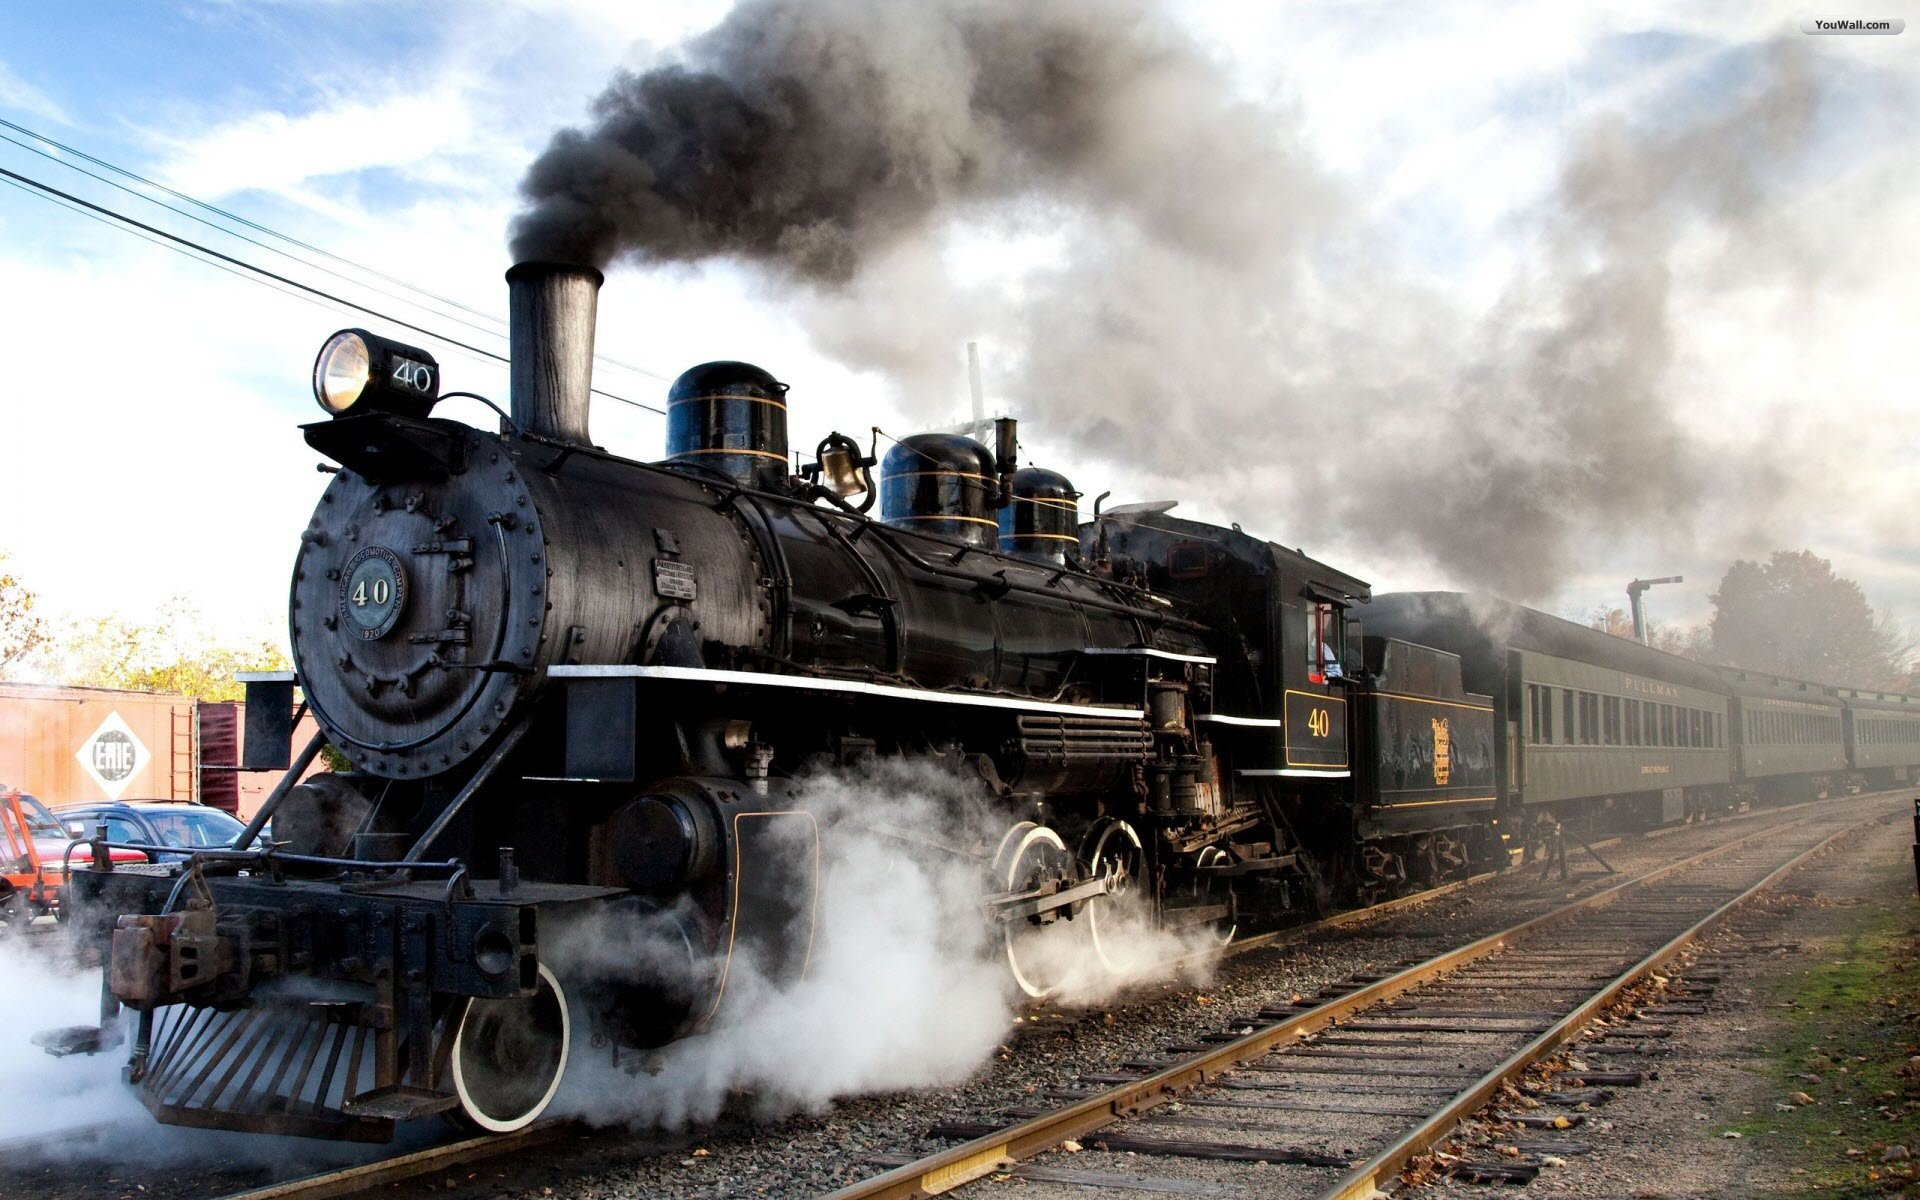 YouWall   Steam Train Wallpaper   wallpaperwallpapersfree wallpaper 1920x1200